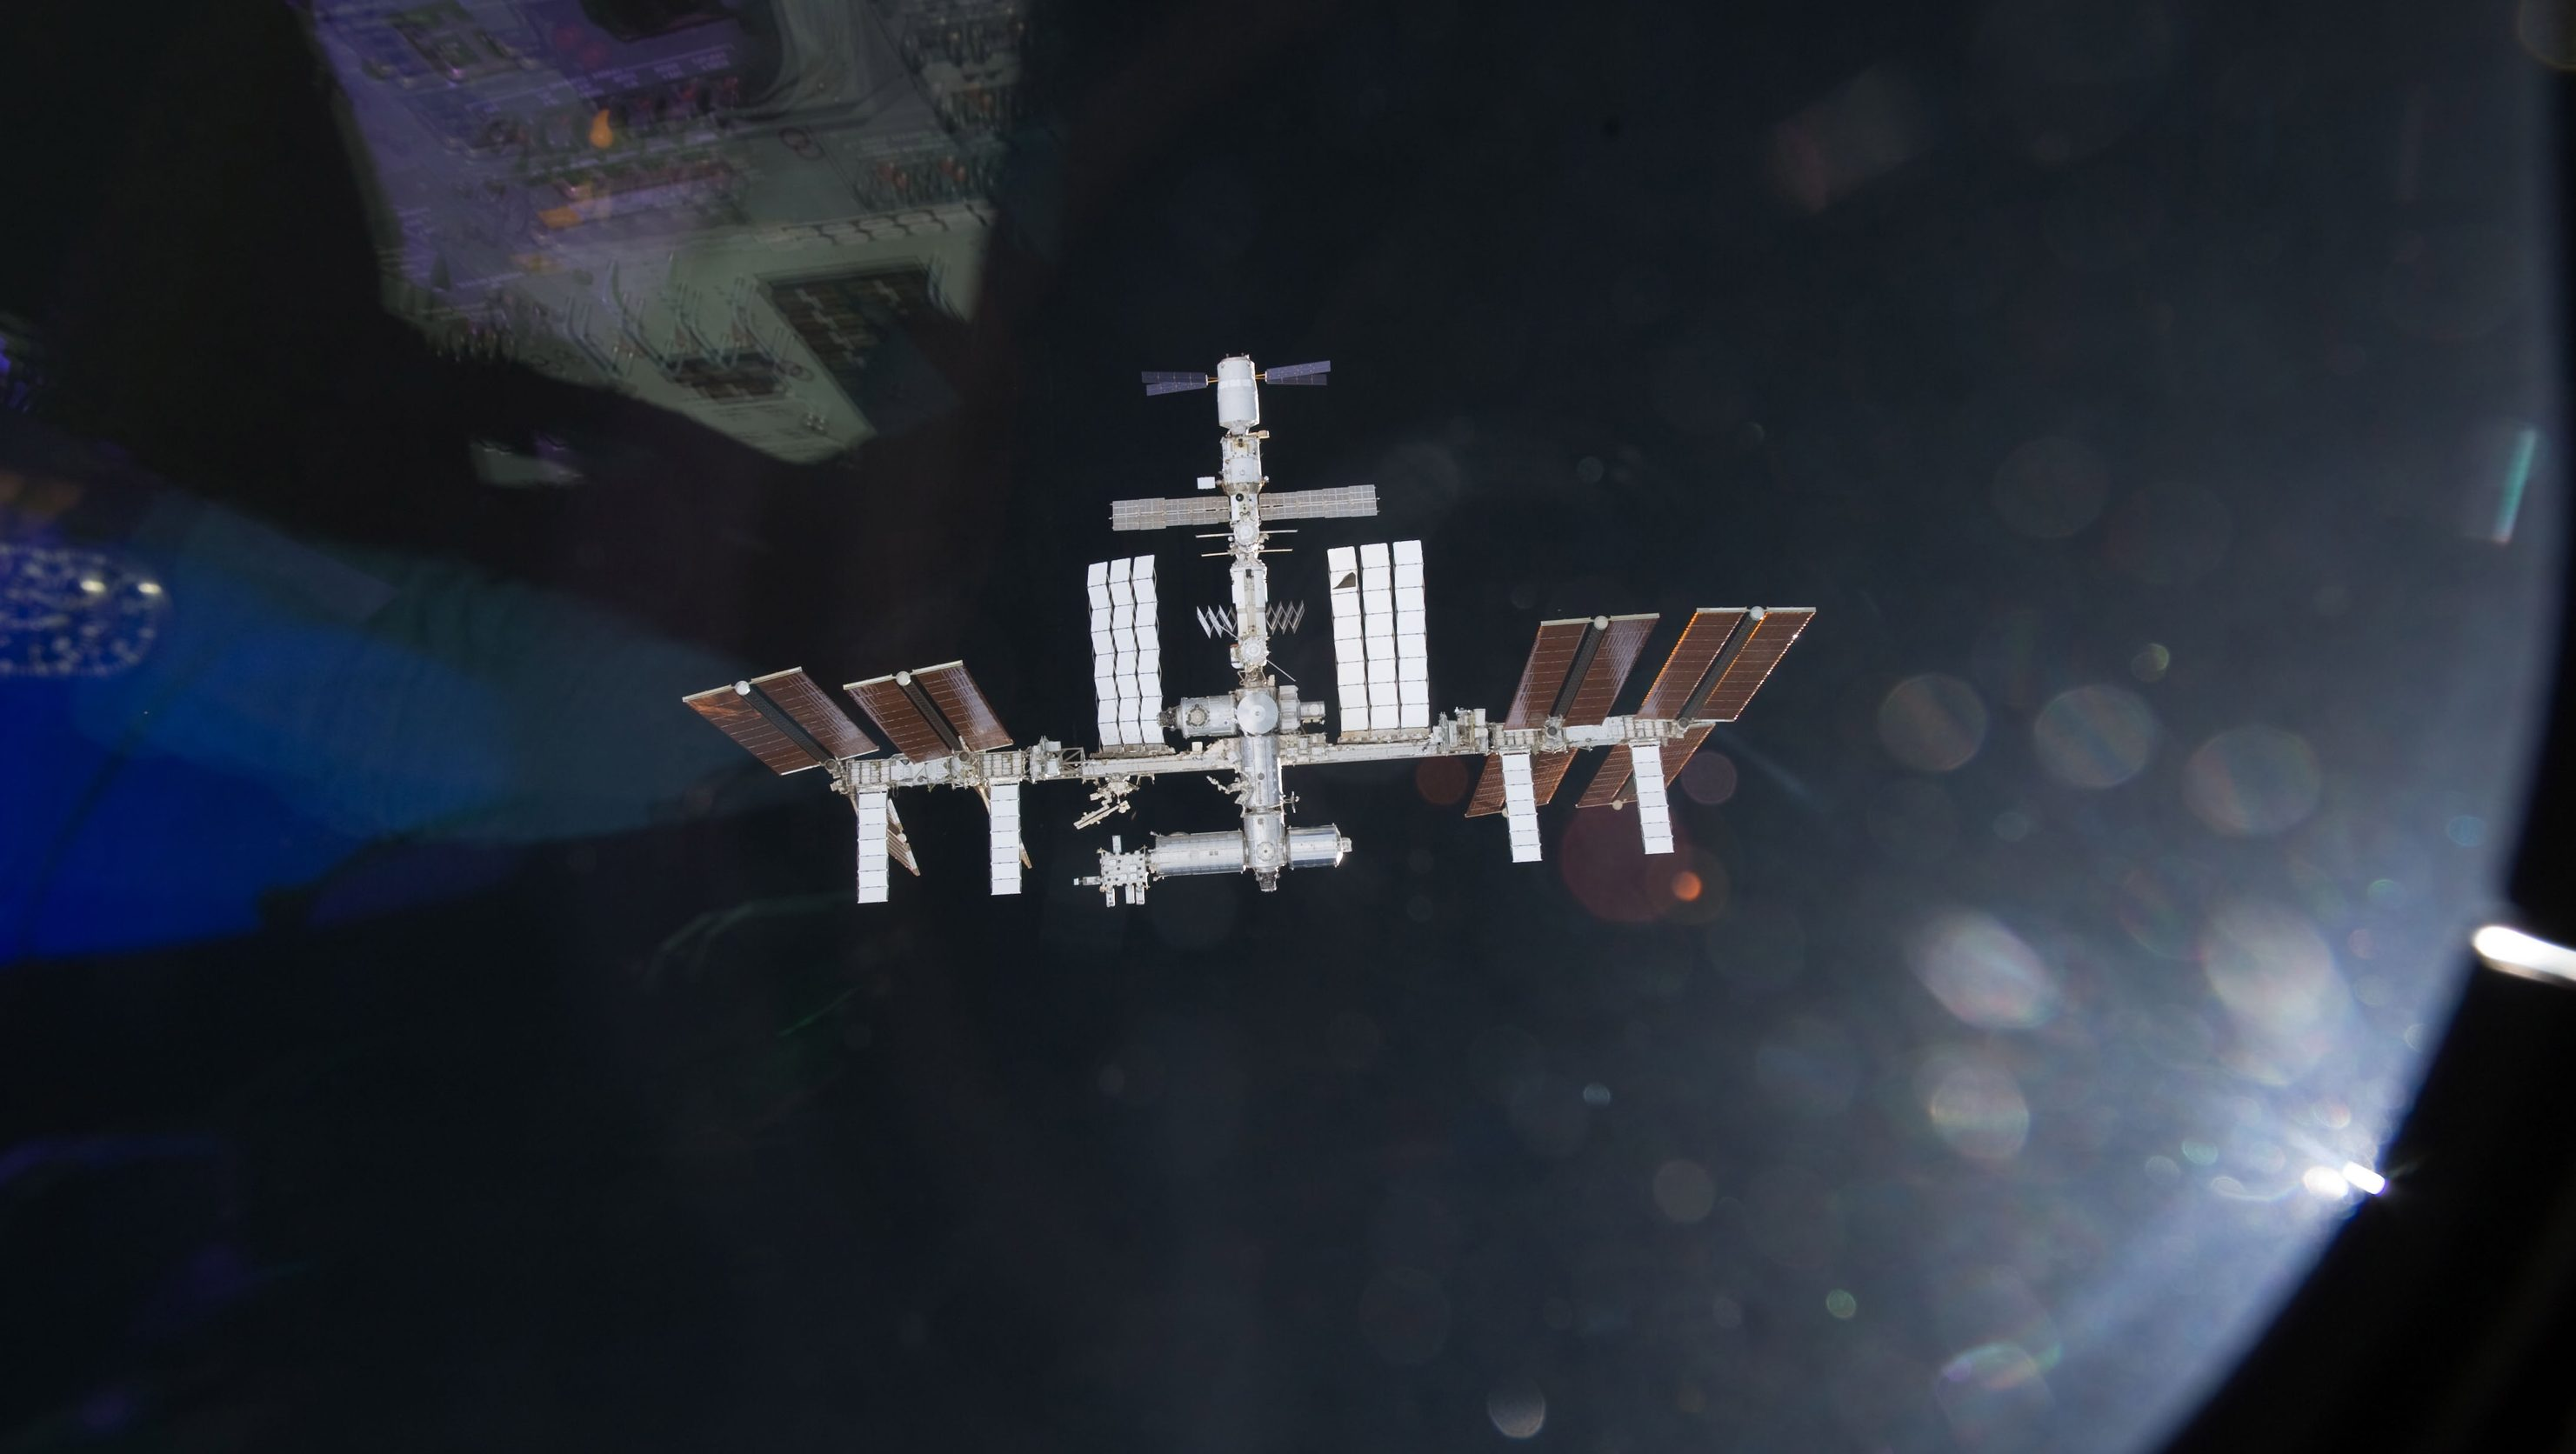 Undated handout image from NASA T.V. released on 20 May 2011 and taken by one of the crew members aboard the space shuttle Endeavour shows the International Space Station (ISS) as the two spacecraft were preparing to link up in Earth orbit. Reports state on 24 March 2012 that the crew of the ISS evacuated to escape capsules as a piece of space debris approached the space station. The debris from a Russian rocket was discovered on 23 March 2012 after it was too late to reposition the Space Station.